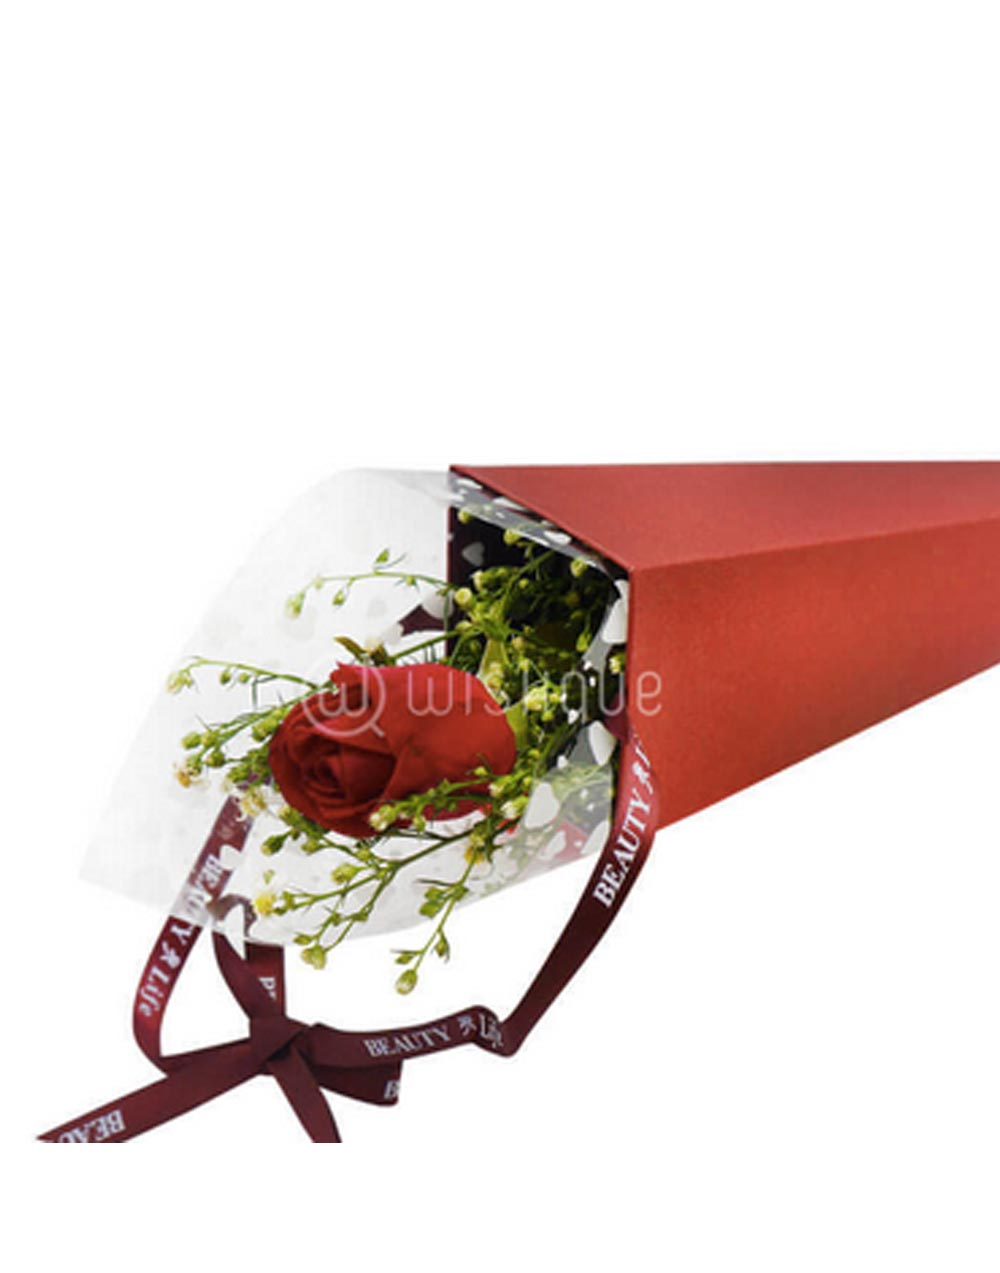 Single Fresh Red Rose in a Holder